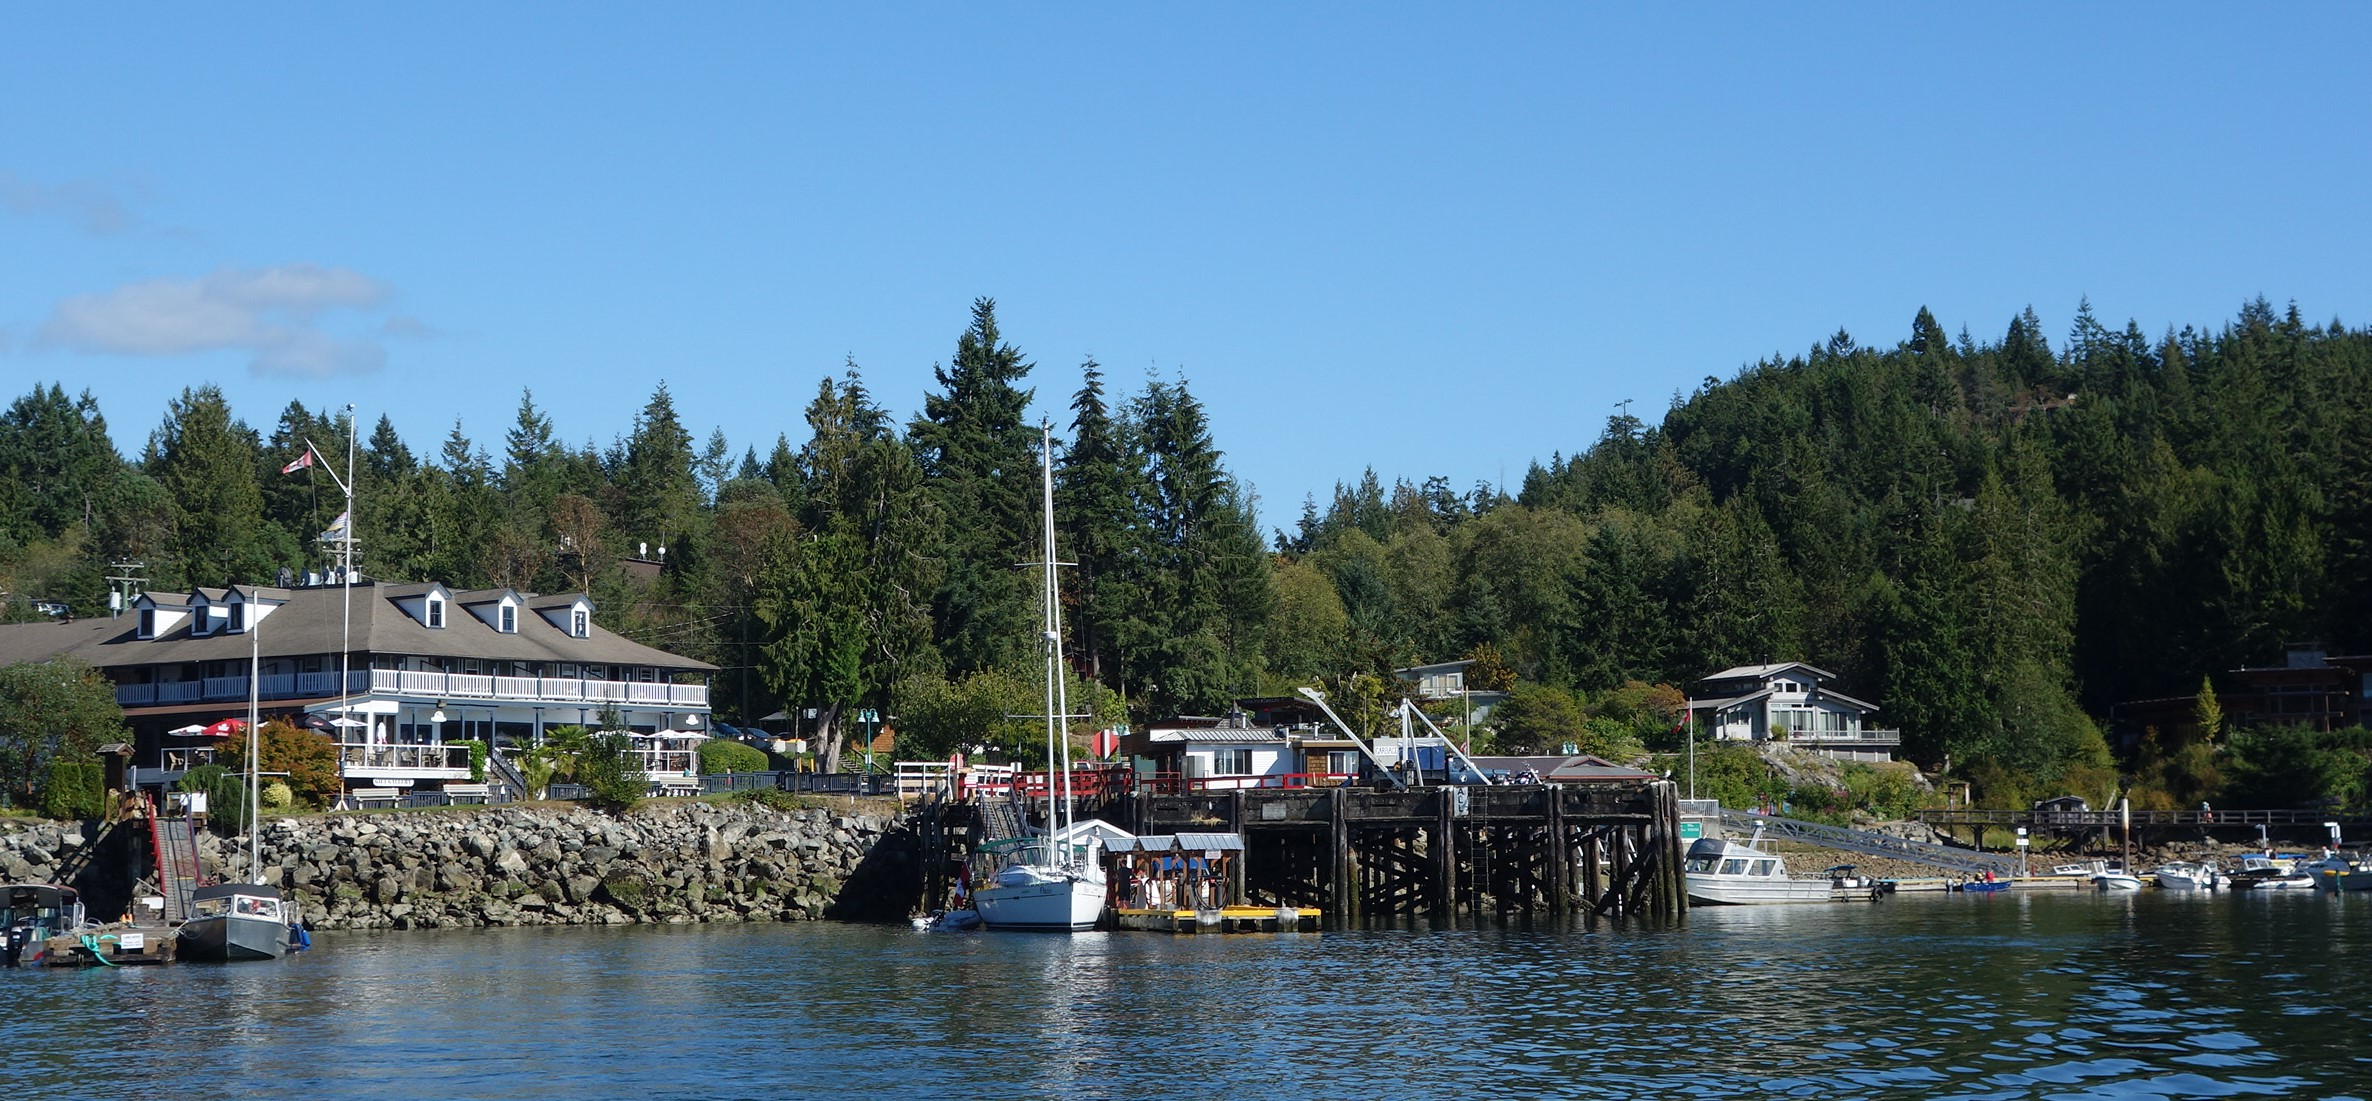 Jobs On The Vancouver Islands That Provide Housing